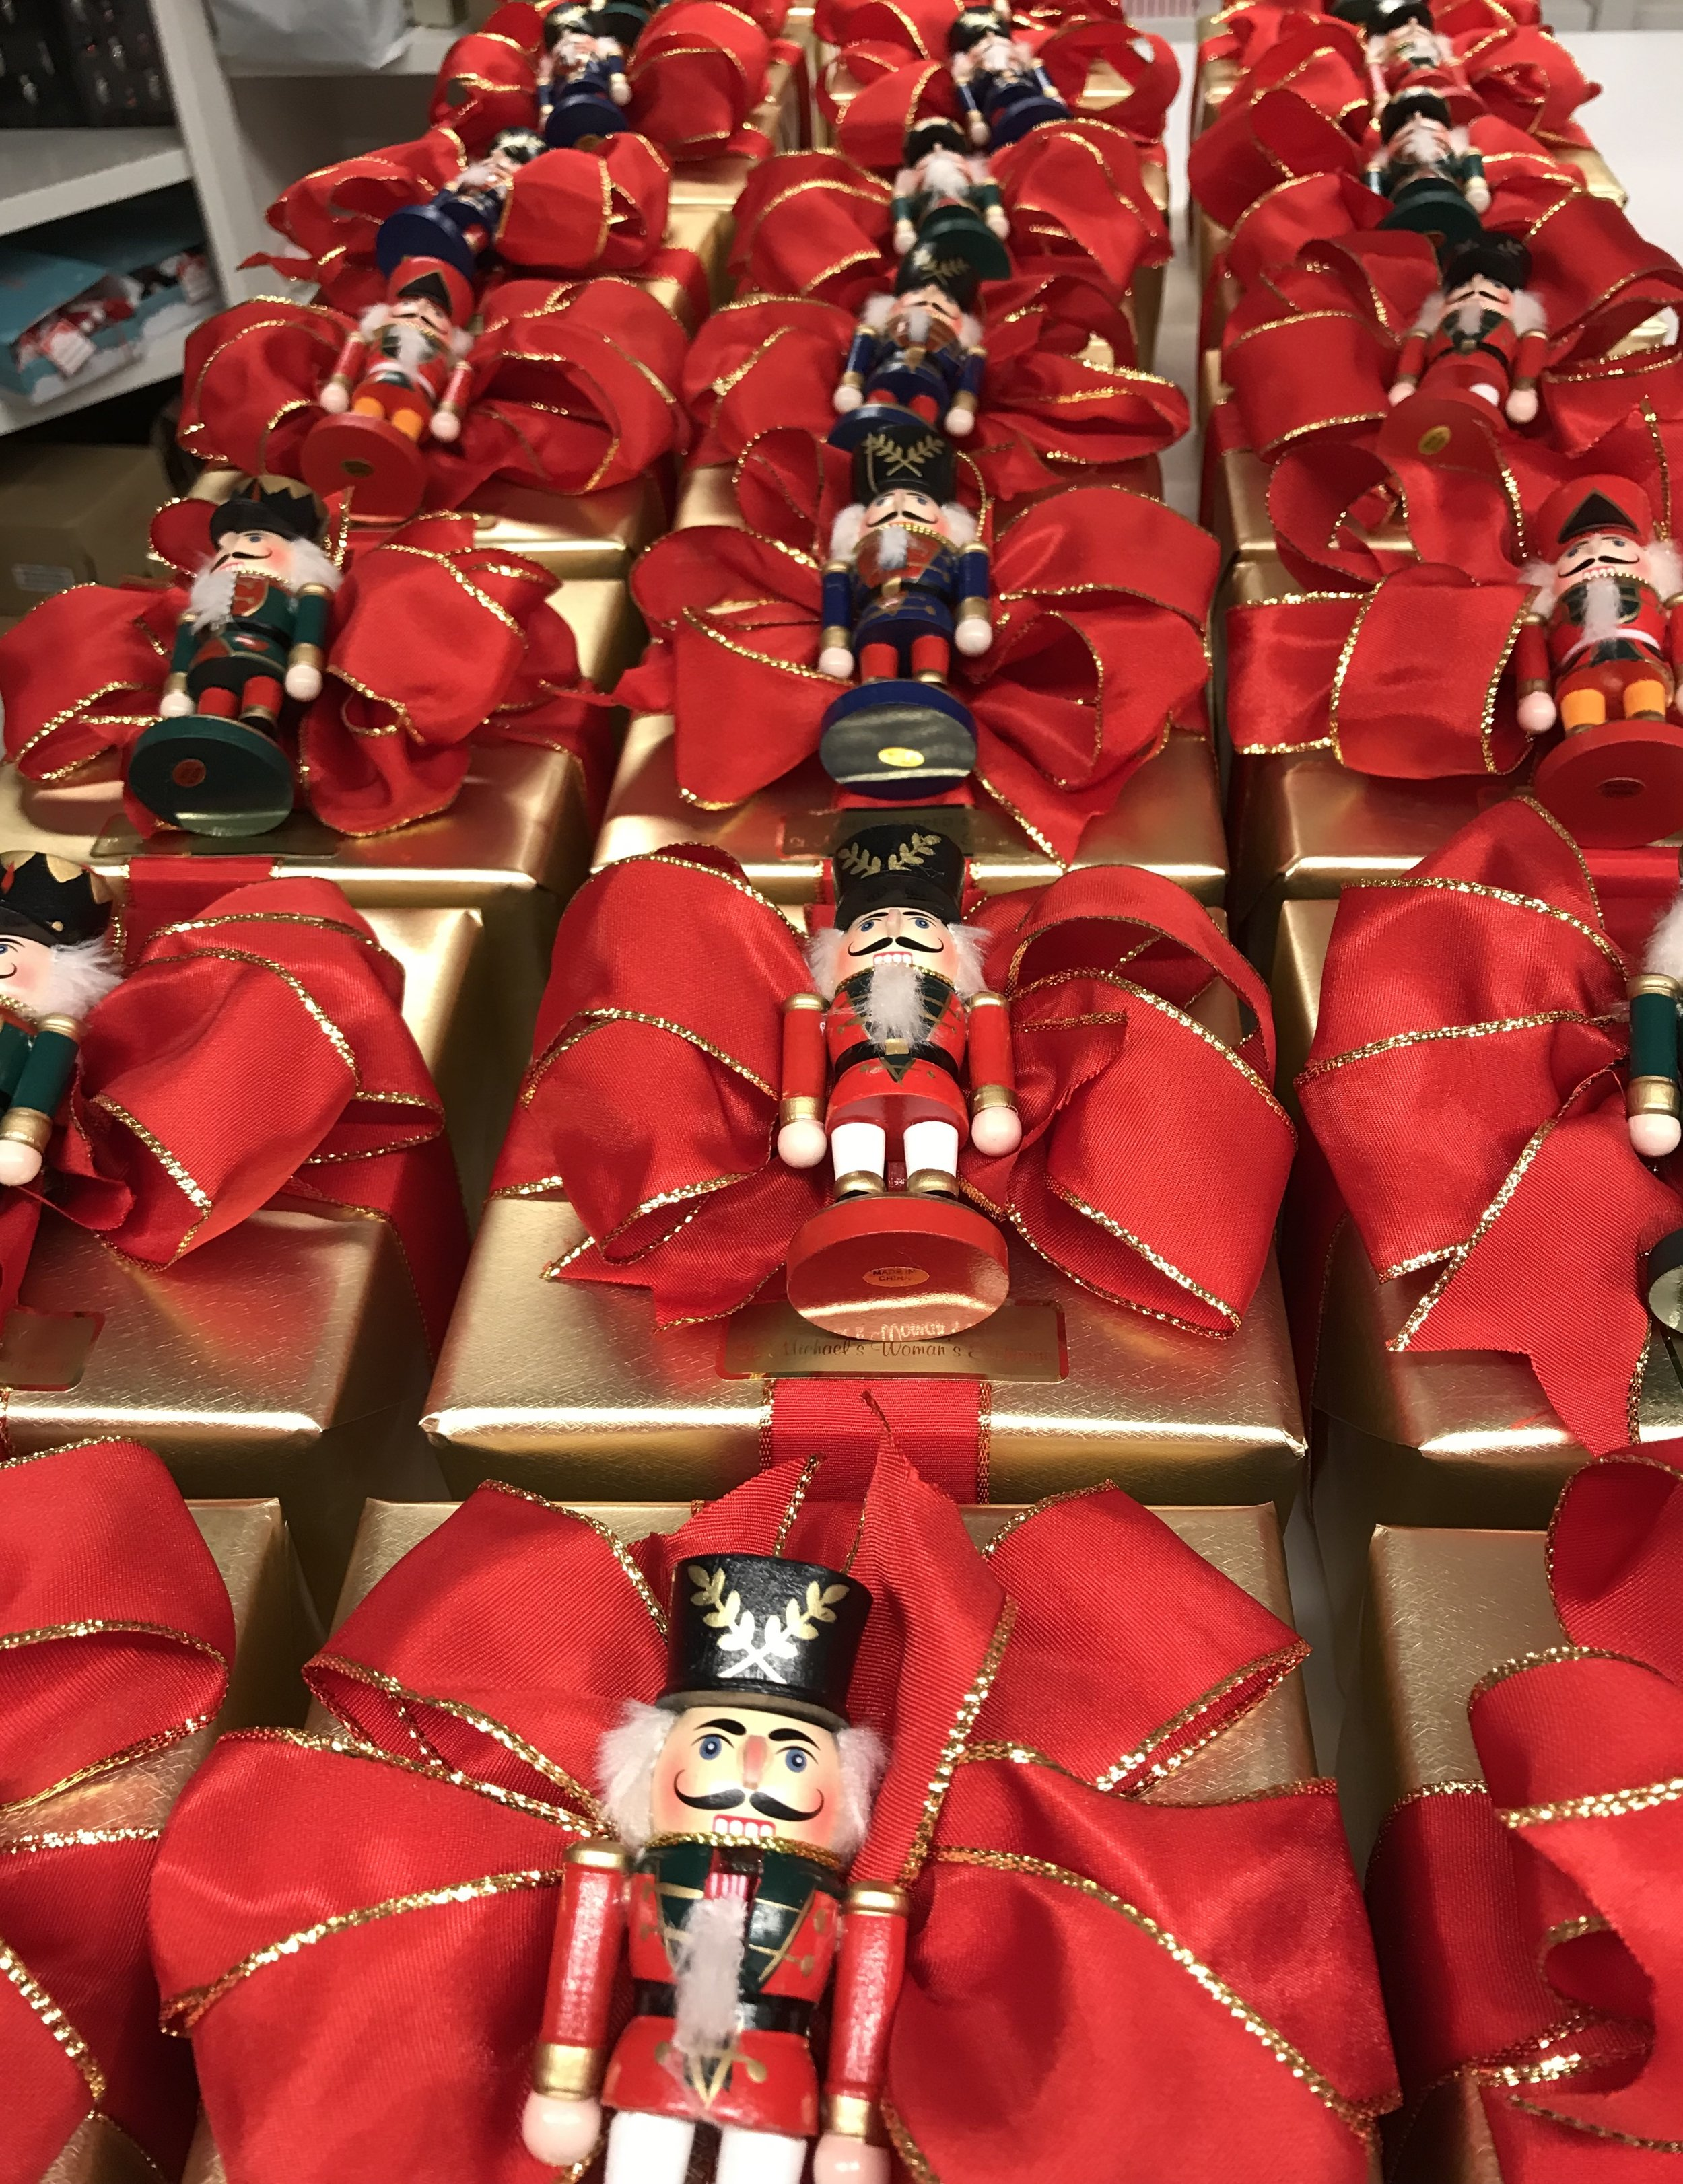 An order for 100 corporate Christmas gifts all lined up looking like toy soldiers.